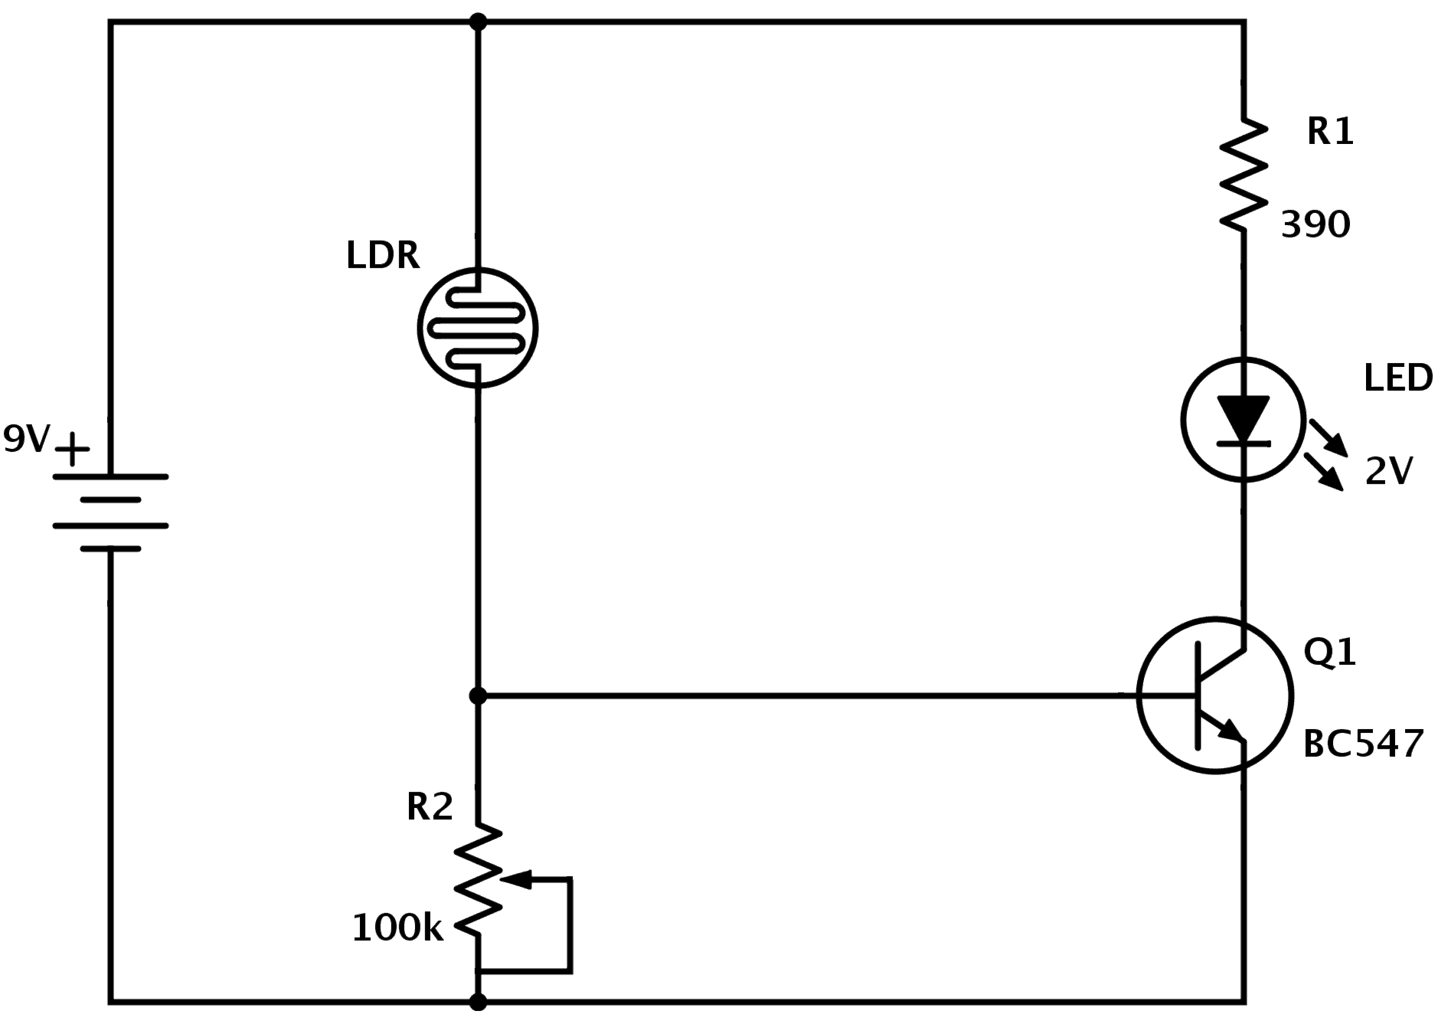 Ldr Circuit Diagram Build Electronic Circuits Chris Products Wiring